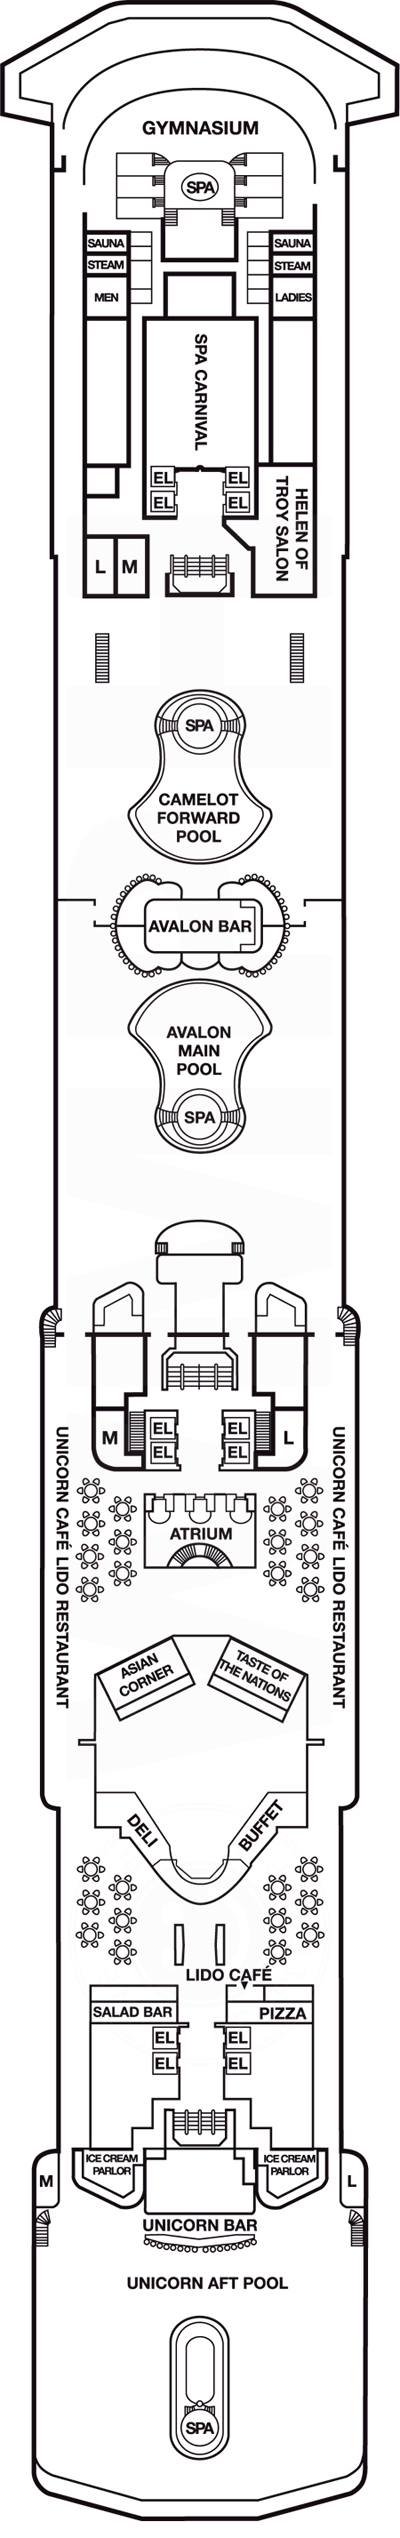 Carnival Legend Lido Deck 9 layout